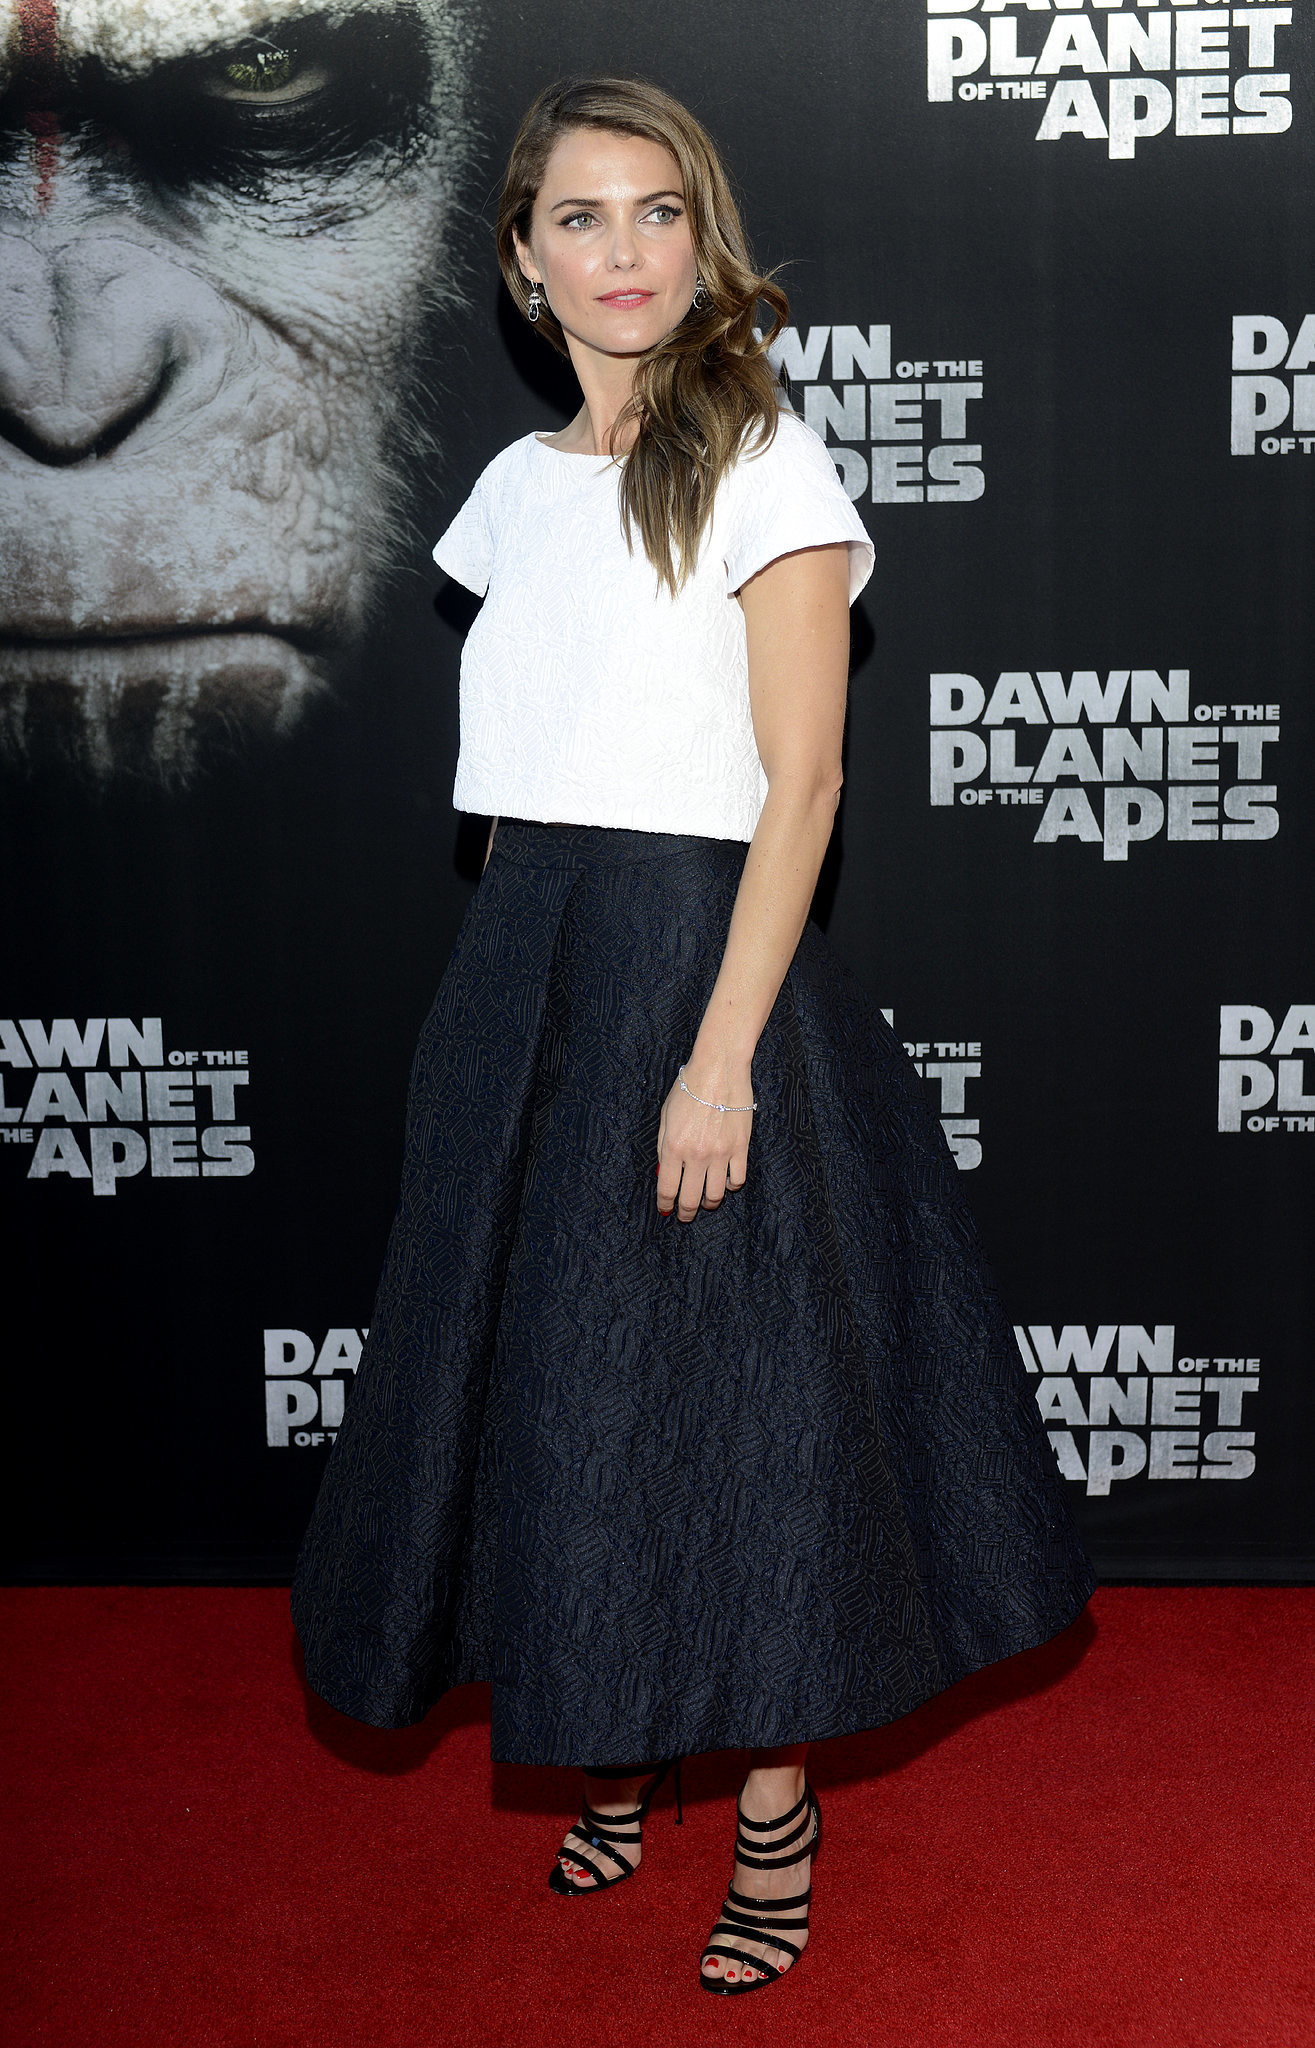 She's done the crop top thing — on the red carpet, no less